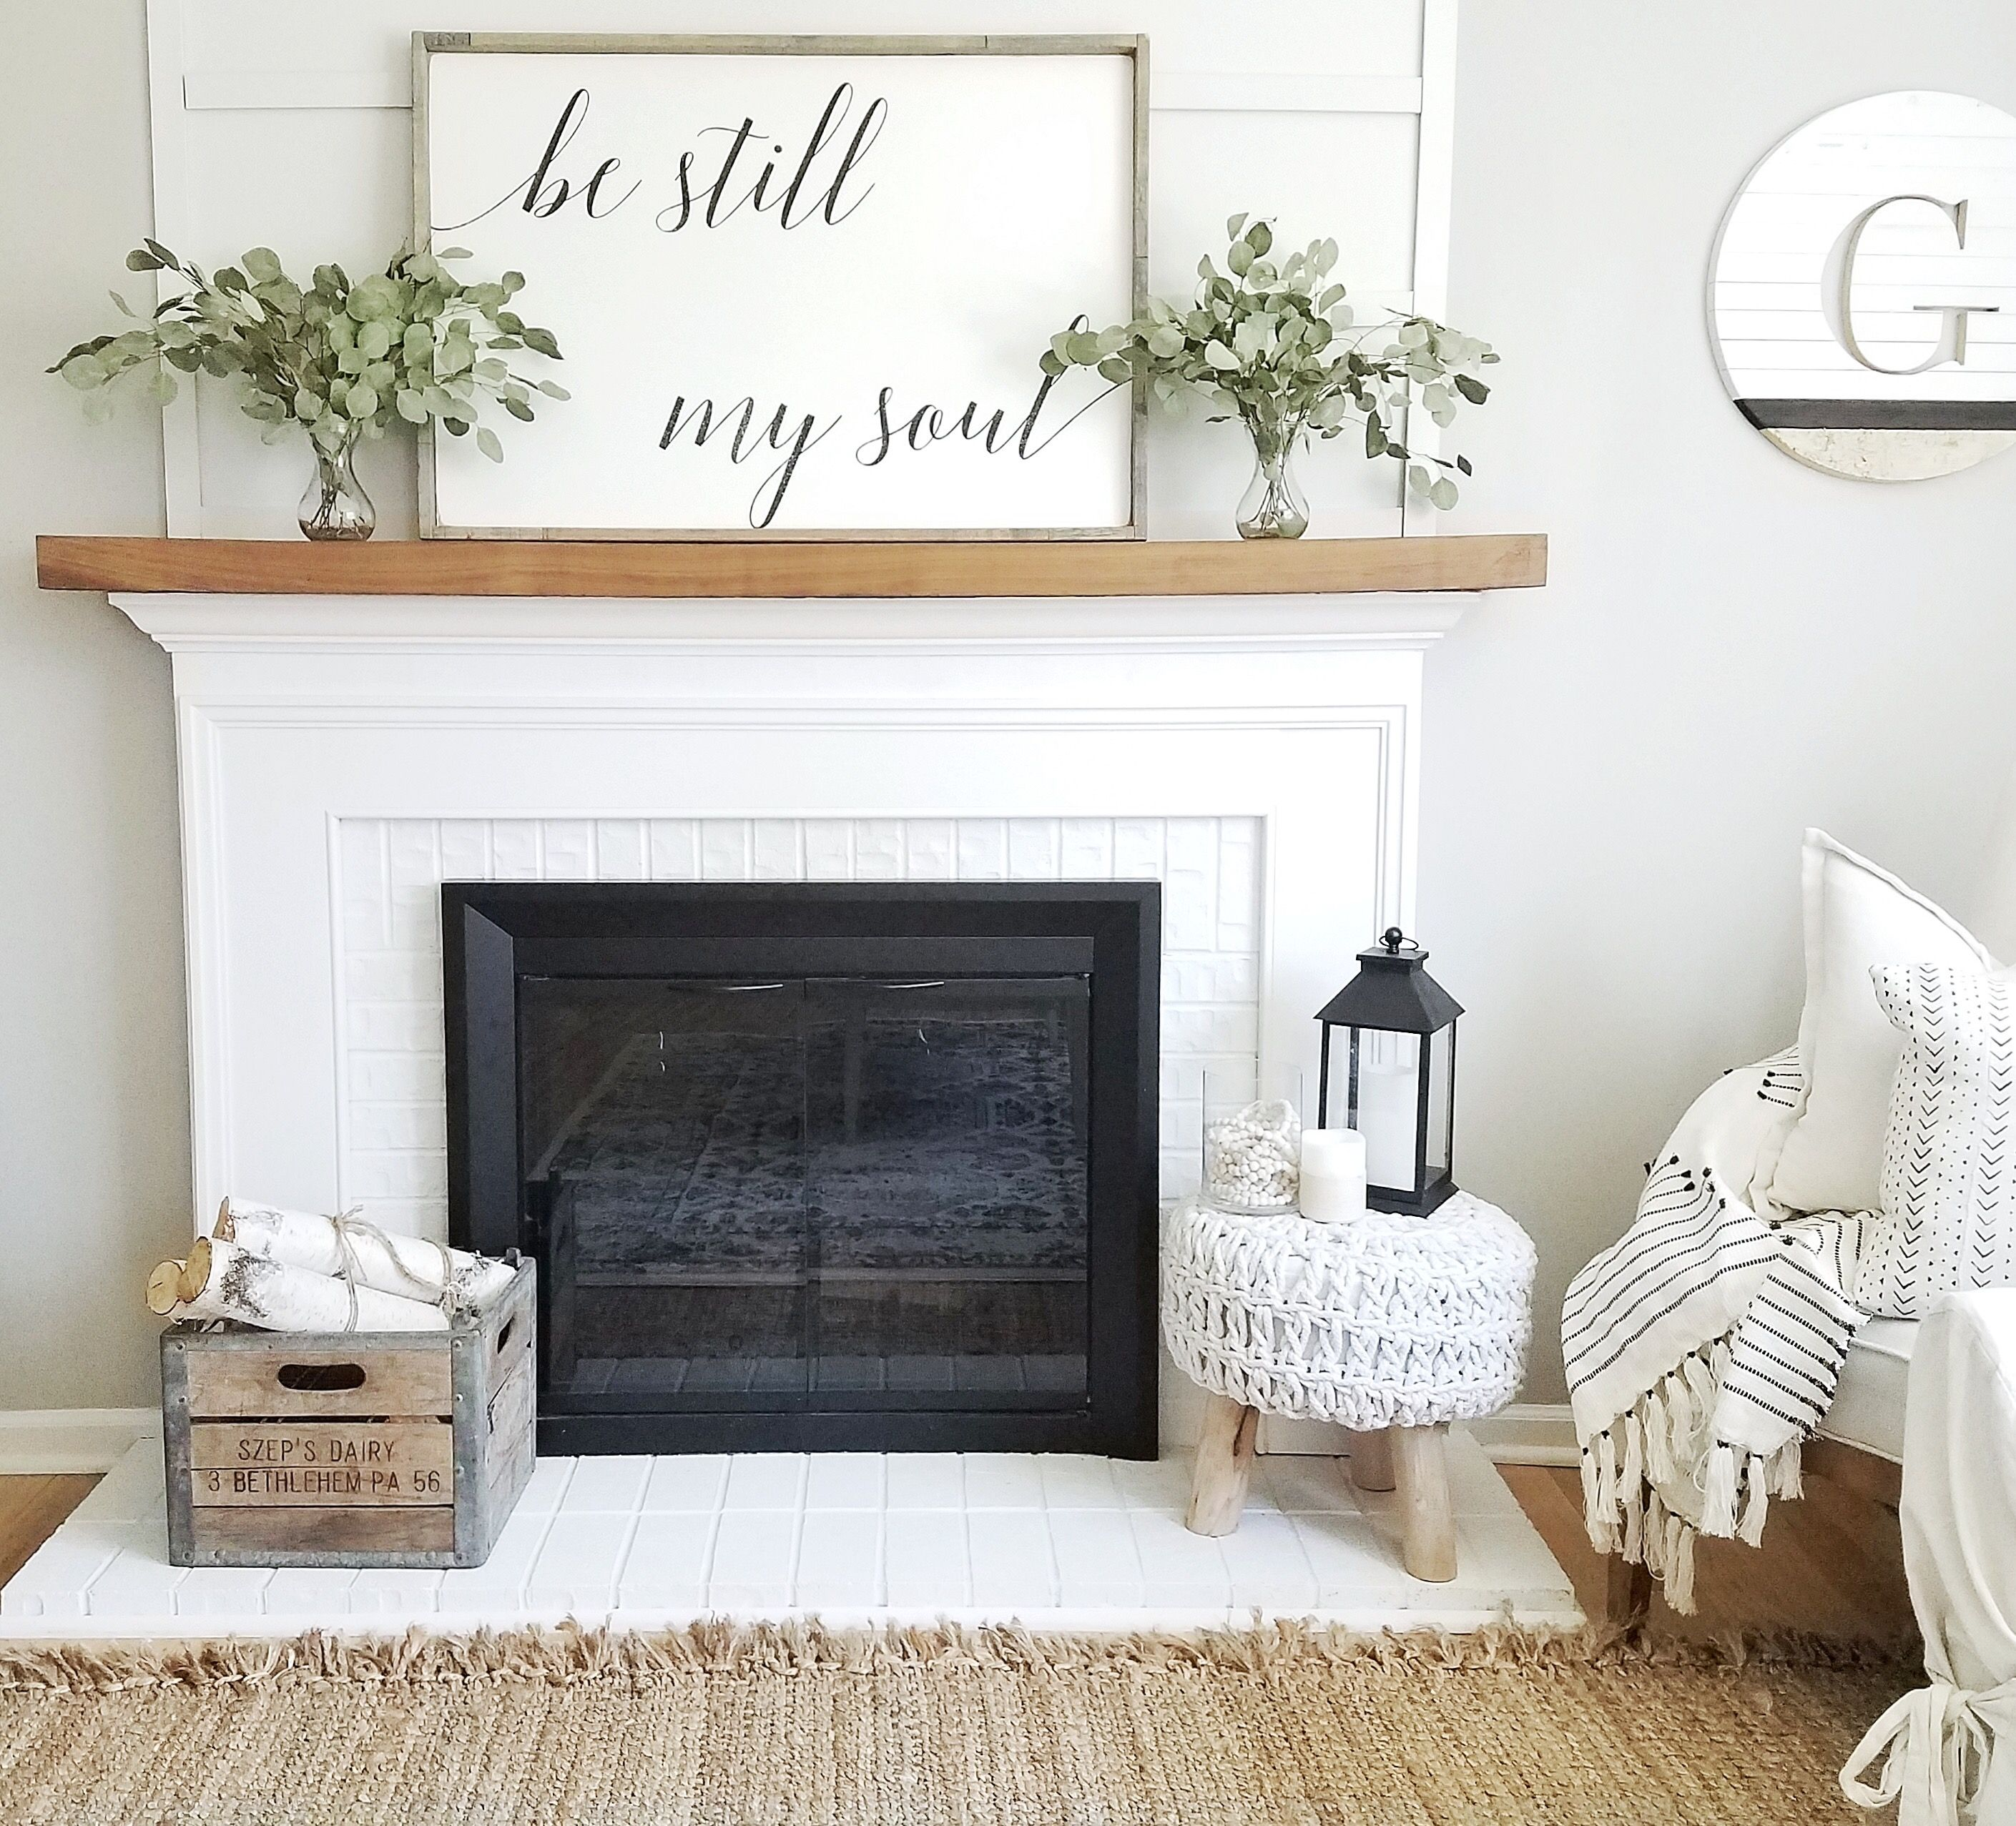 Modern farmhouse decor and Wood mantle